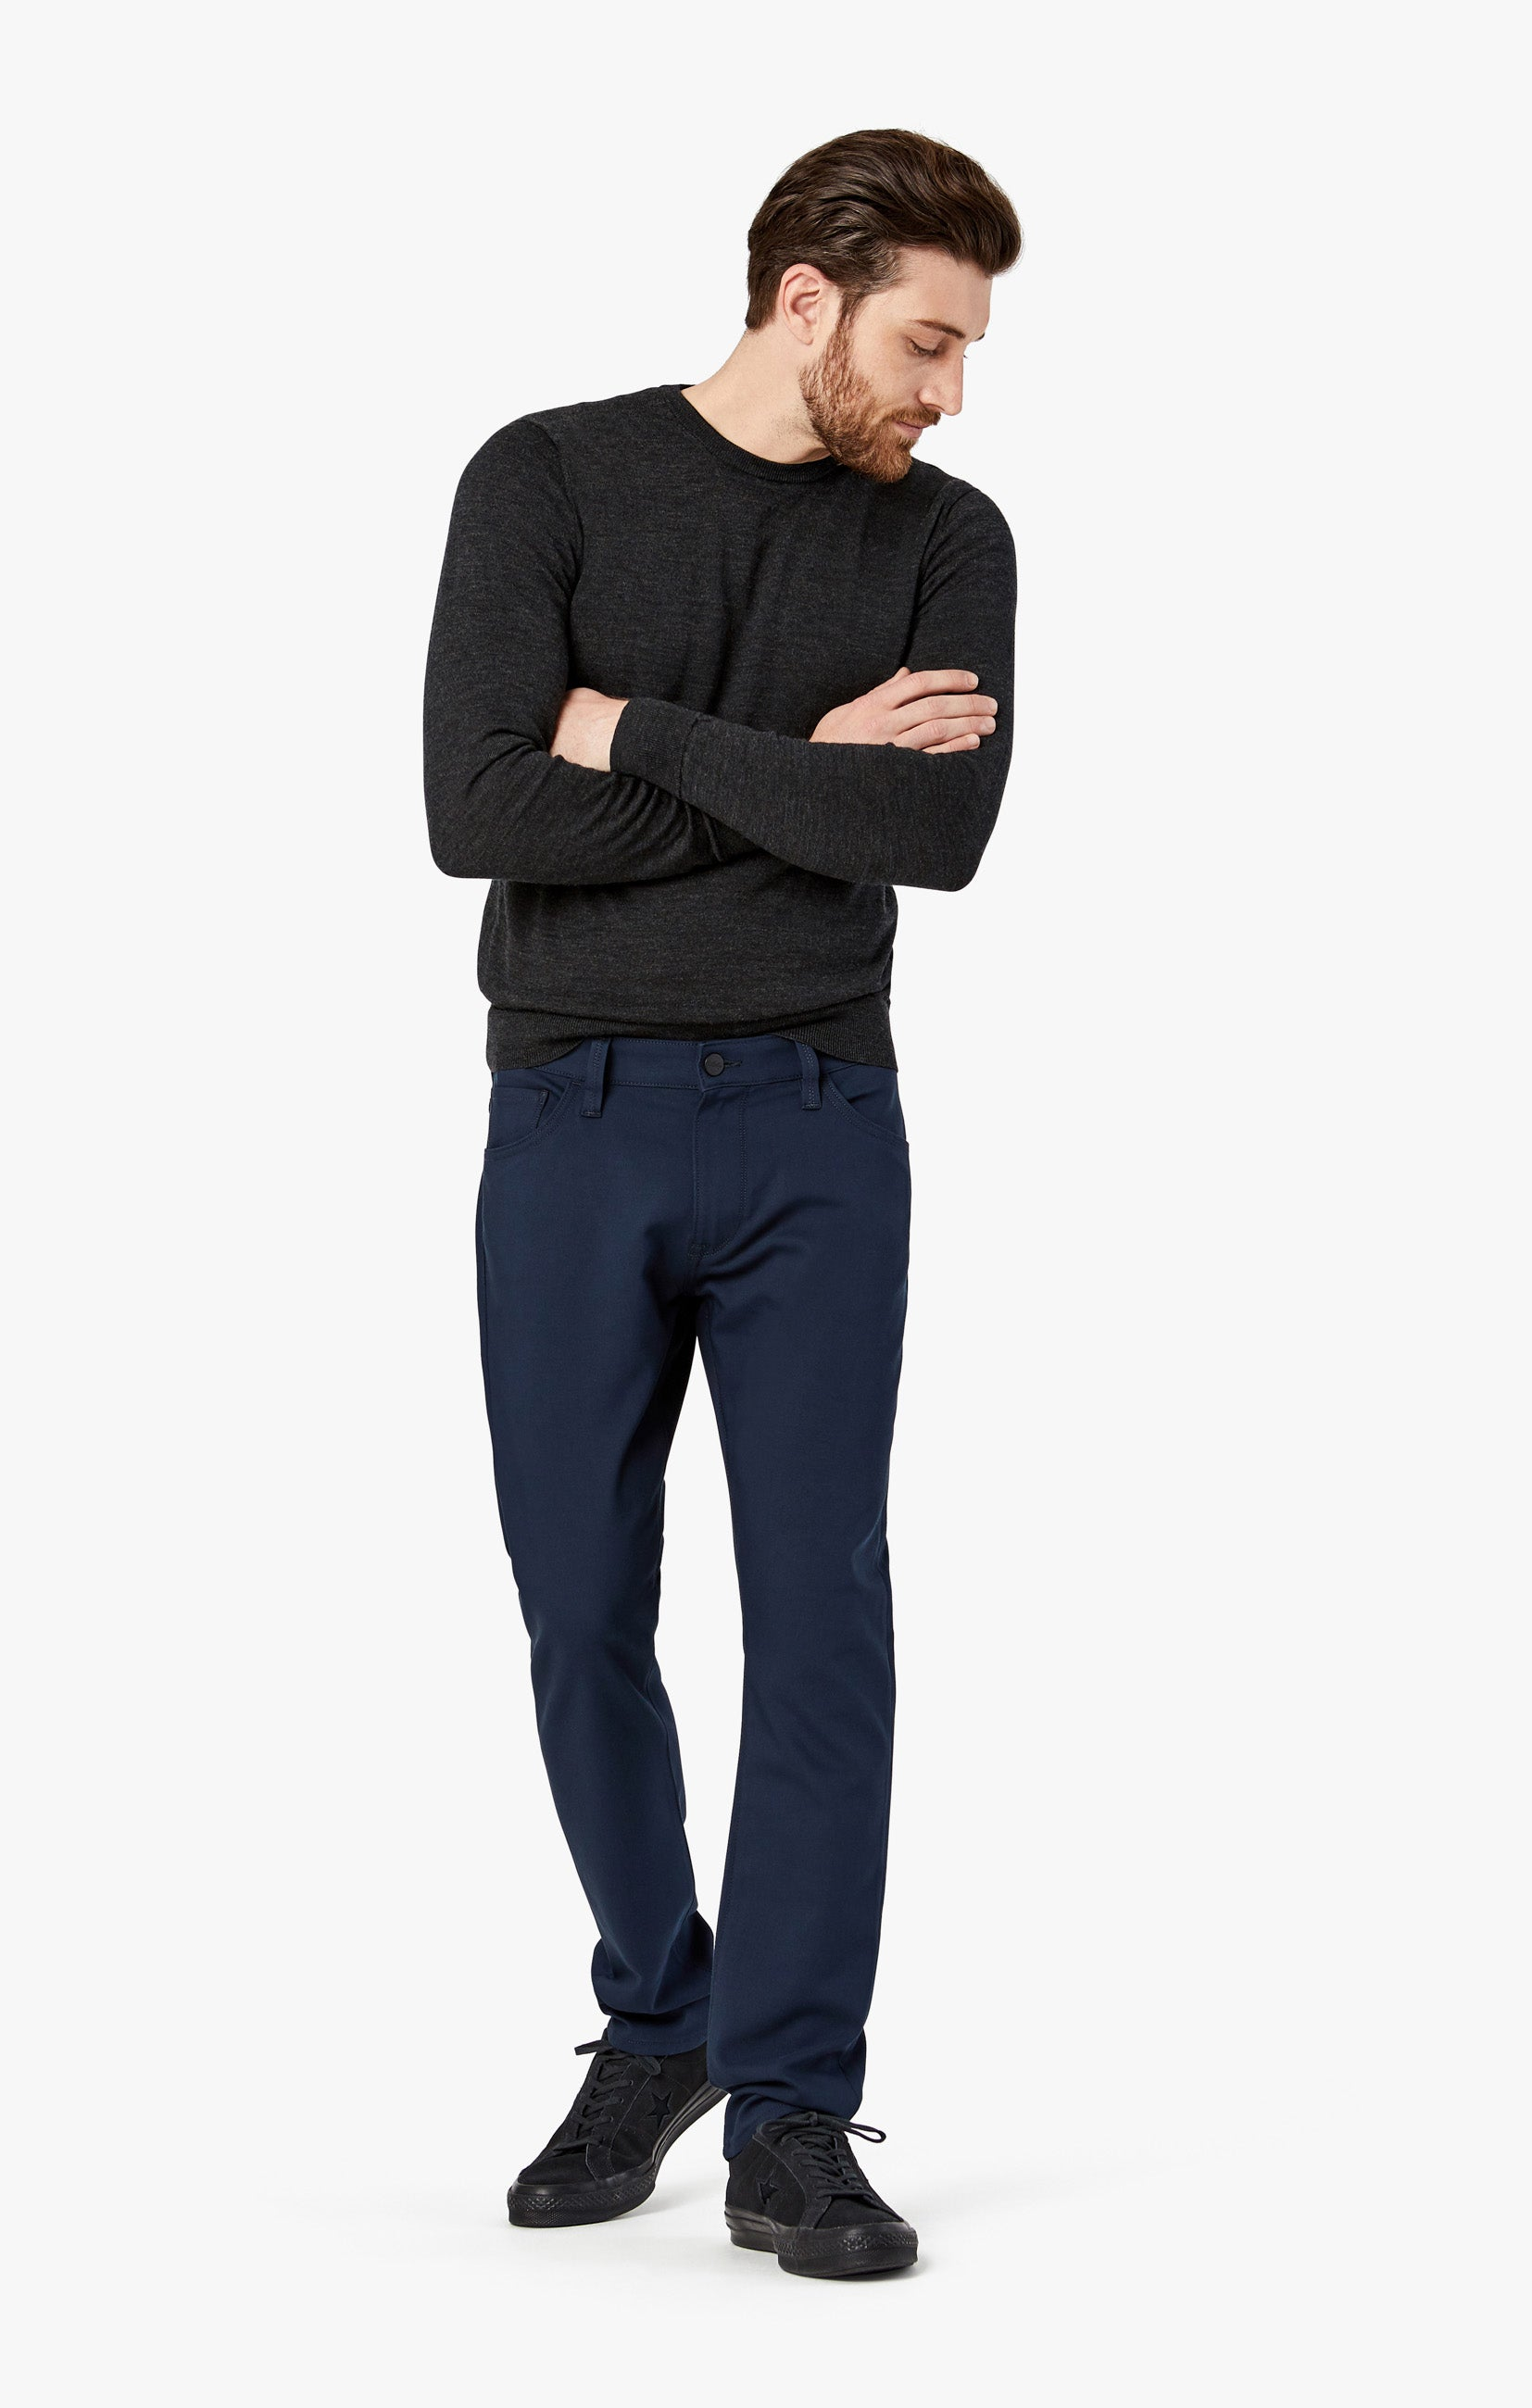 Courage Straight Leg Pants in Navy Commuter Image 1